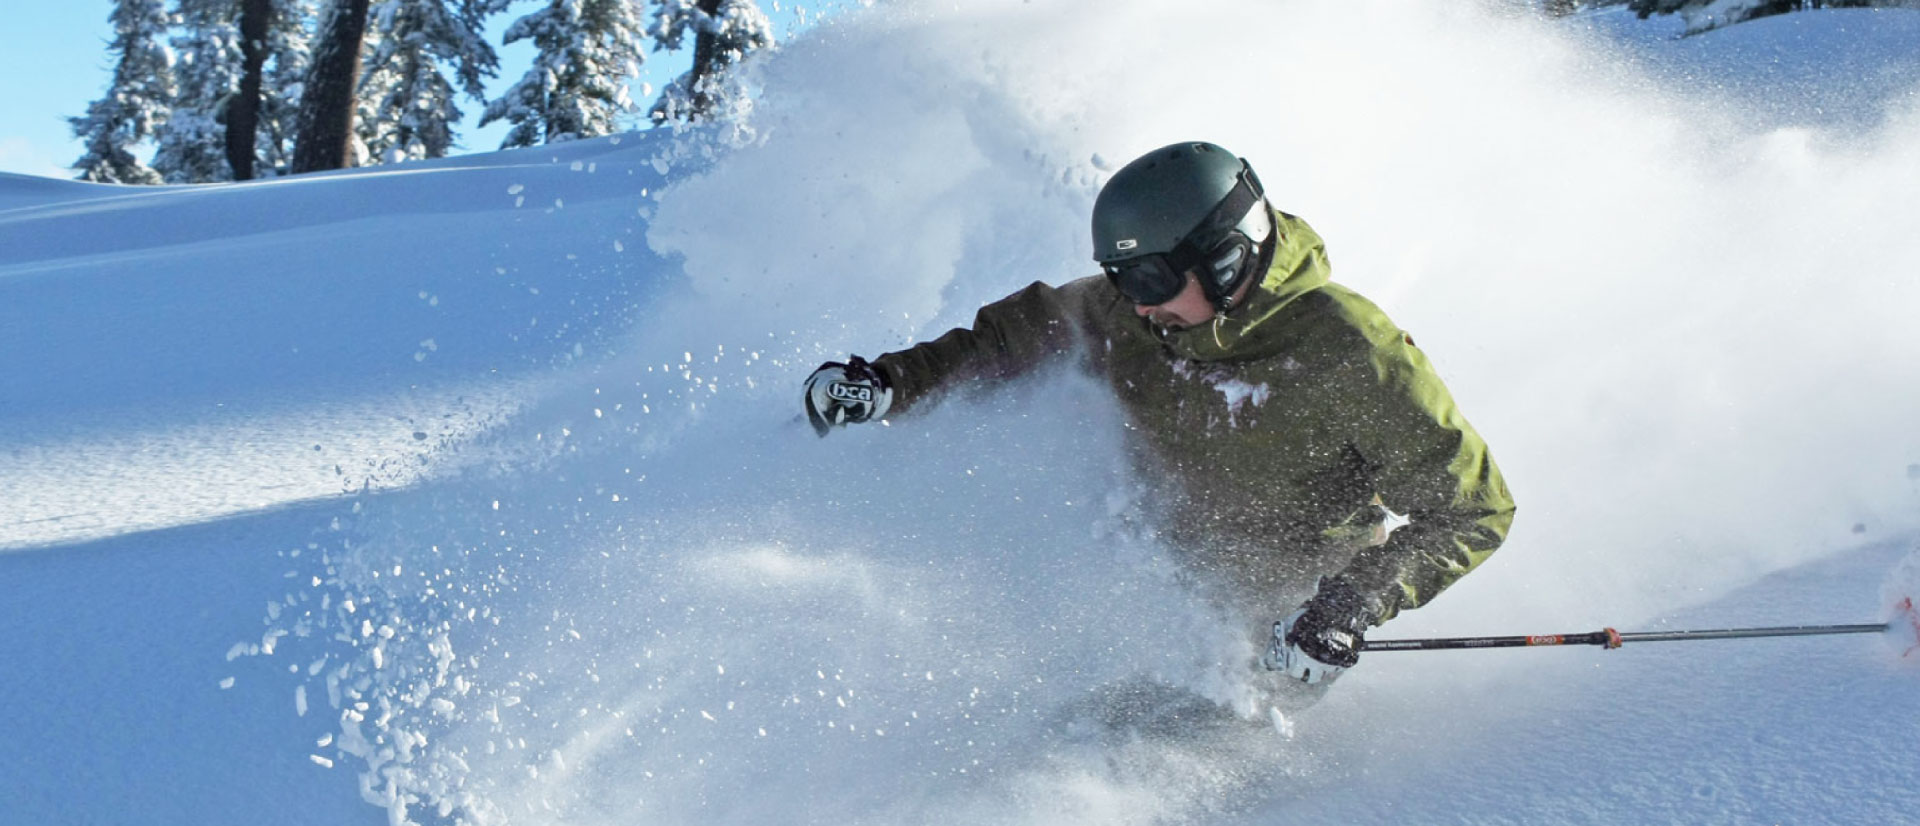 Dodge Ridge Ski Area 2018/19 Season Passes